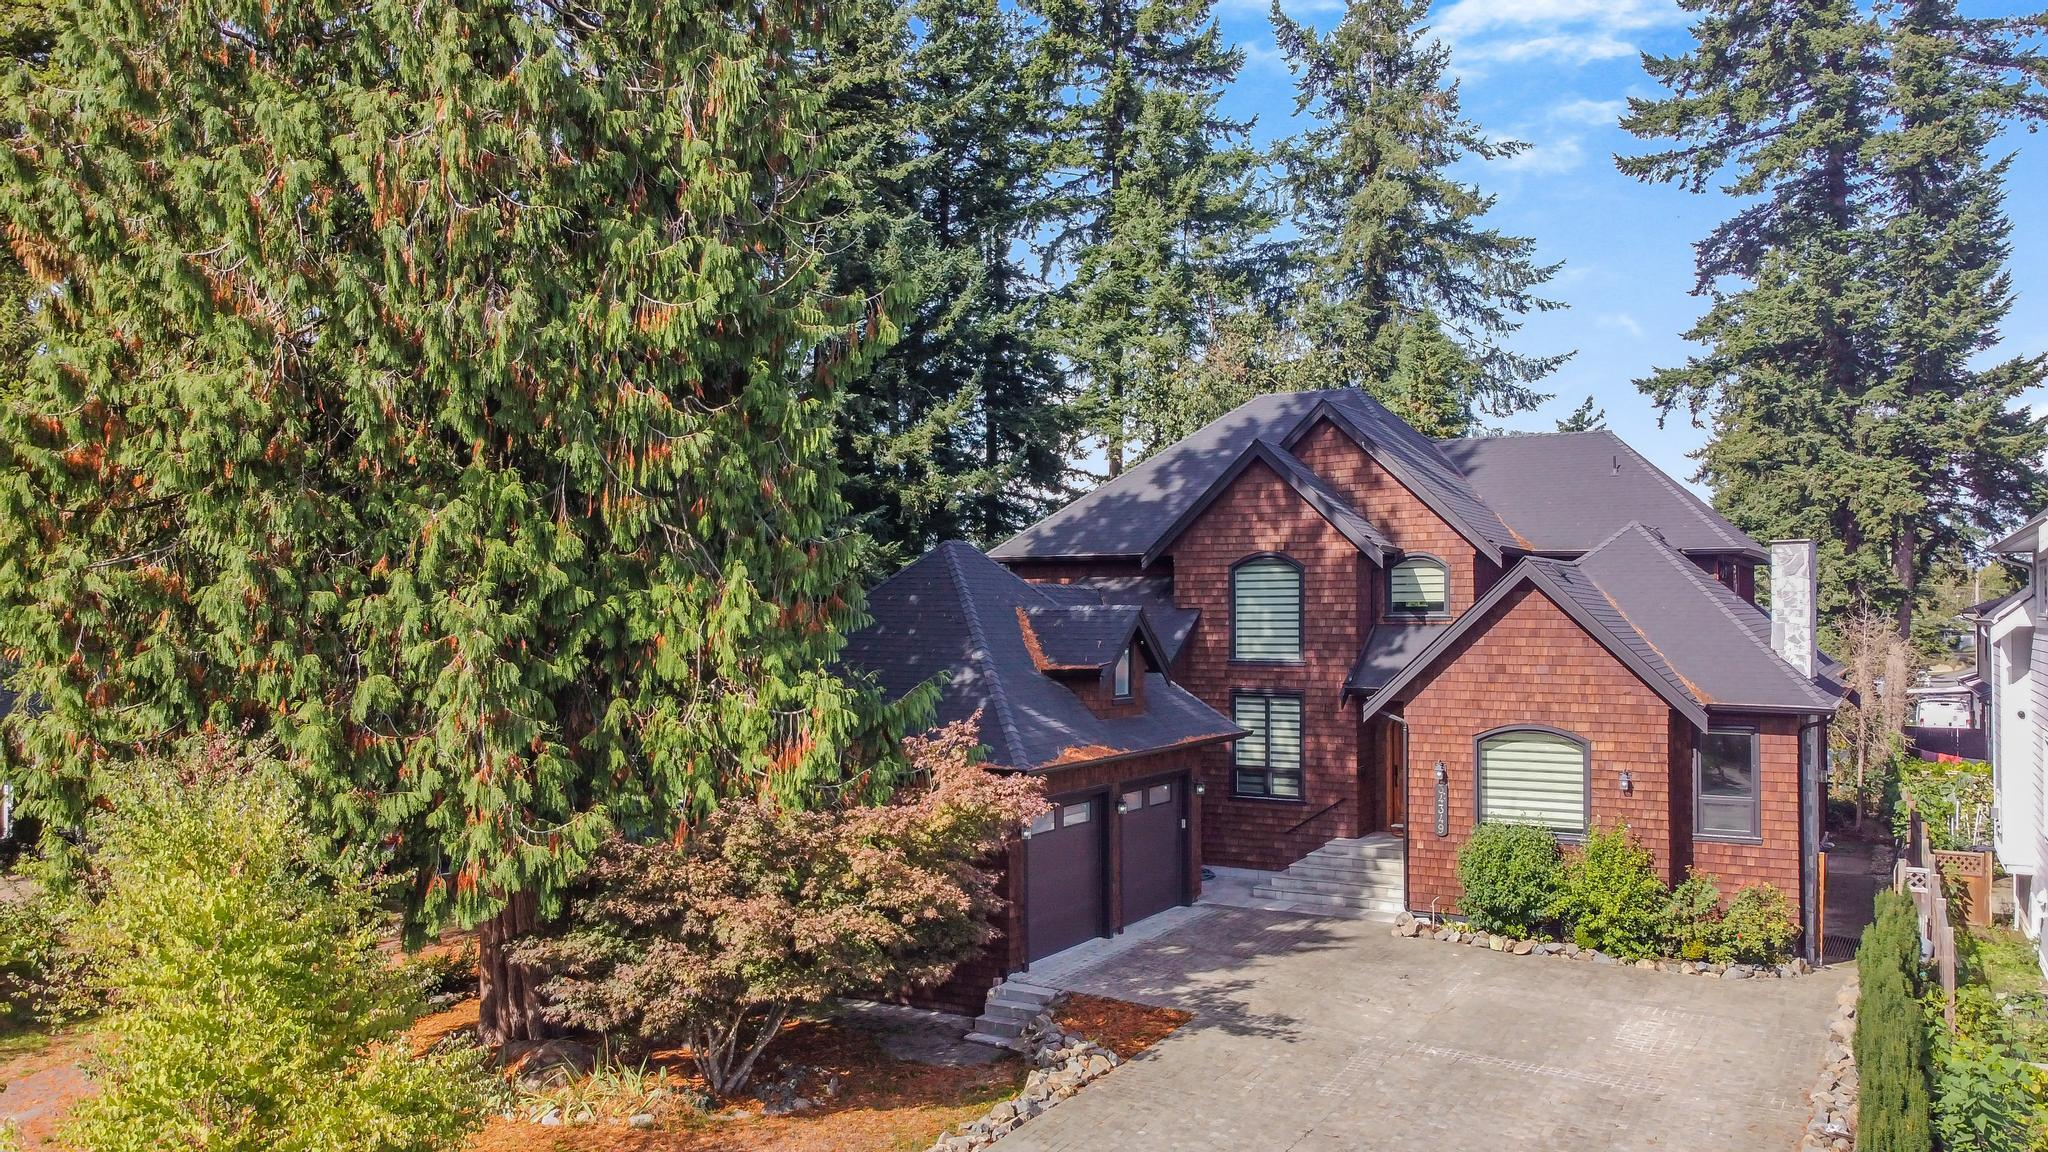 34349 GREEN AVENUE - Central Abbotsford House/Single Family for sale, 5 Bedrooms (R2622670) - #1